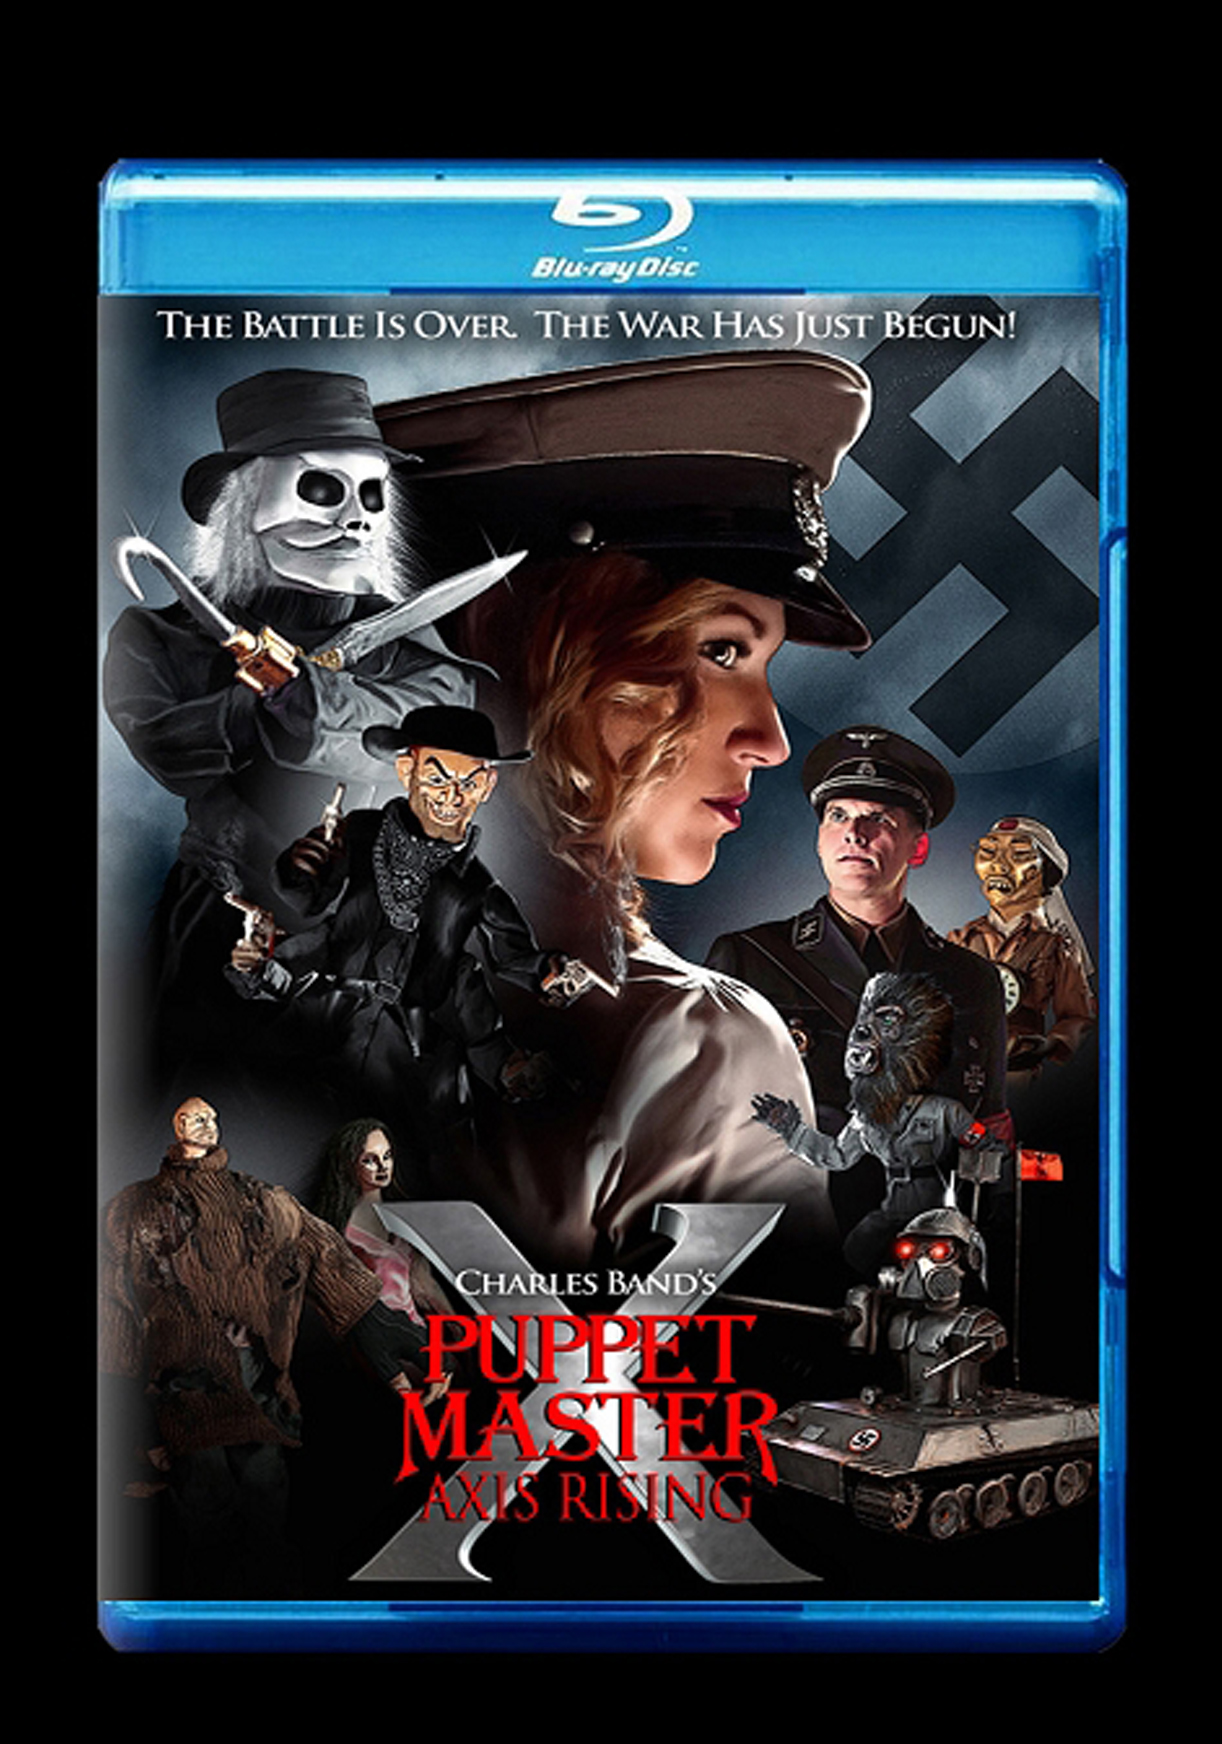 Puppet Master: Axis Rising   Blu-Ray  $19.95